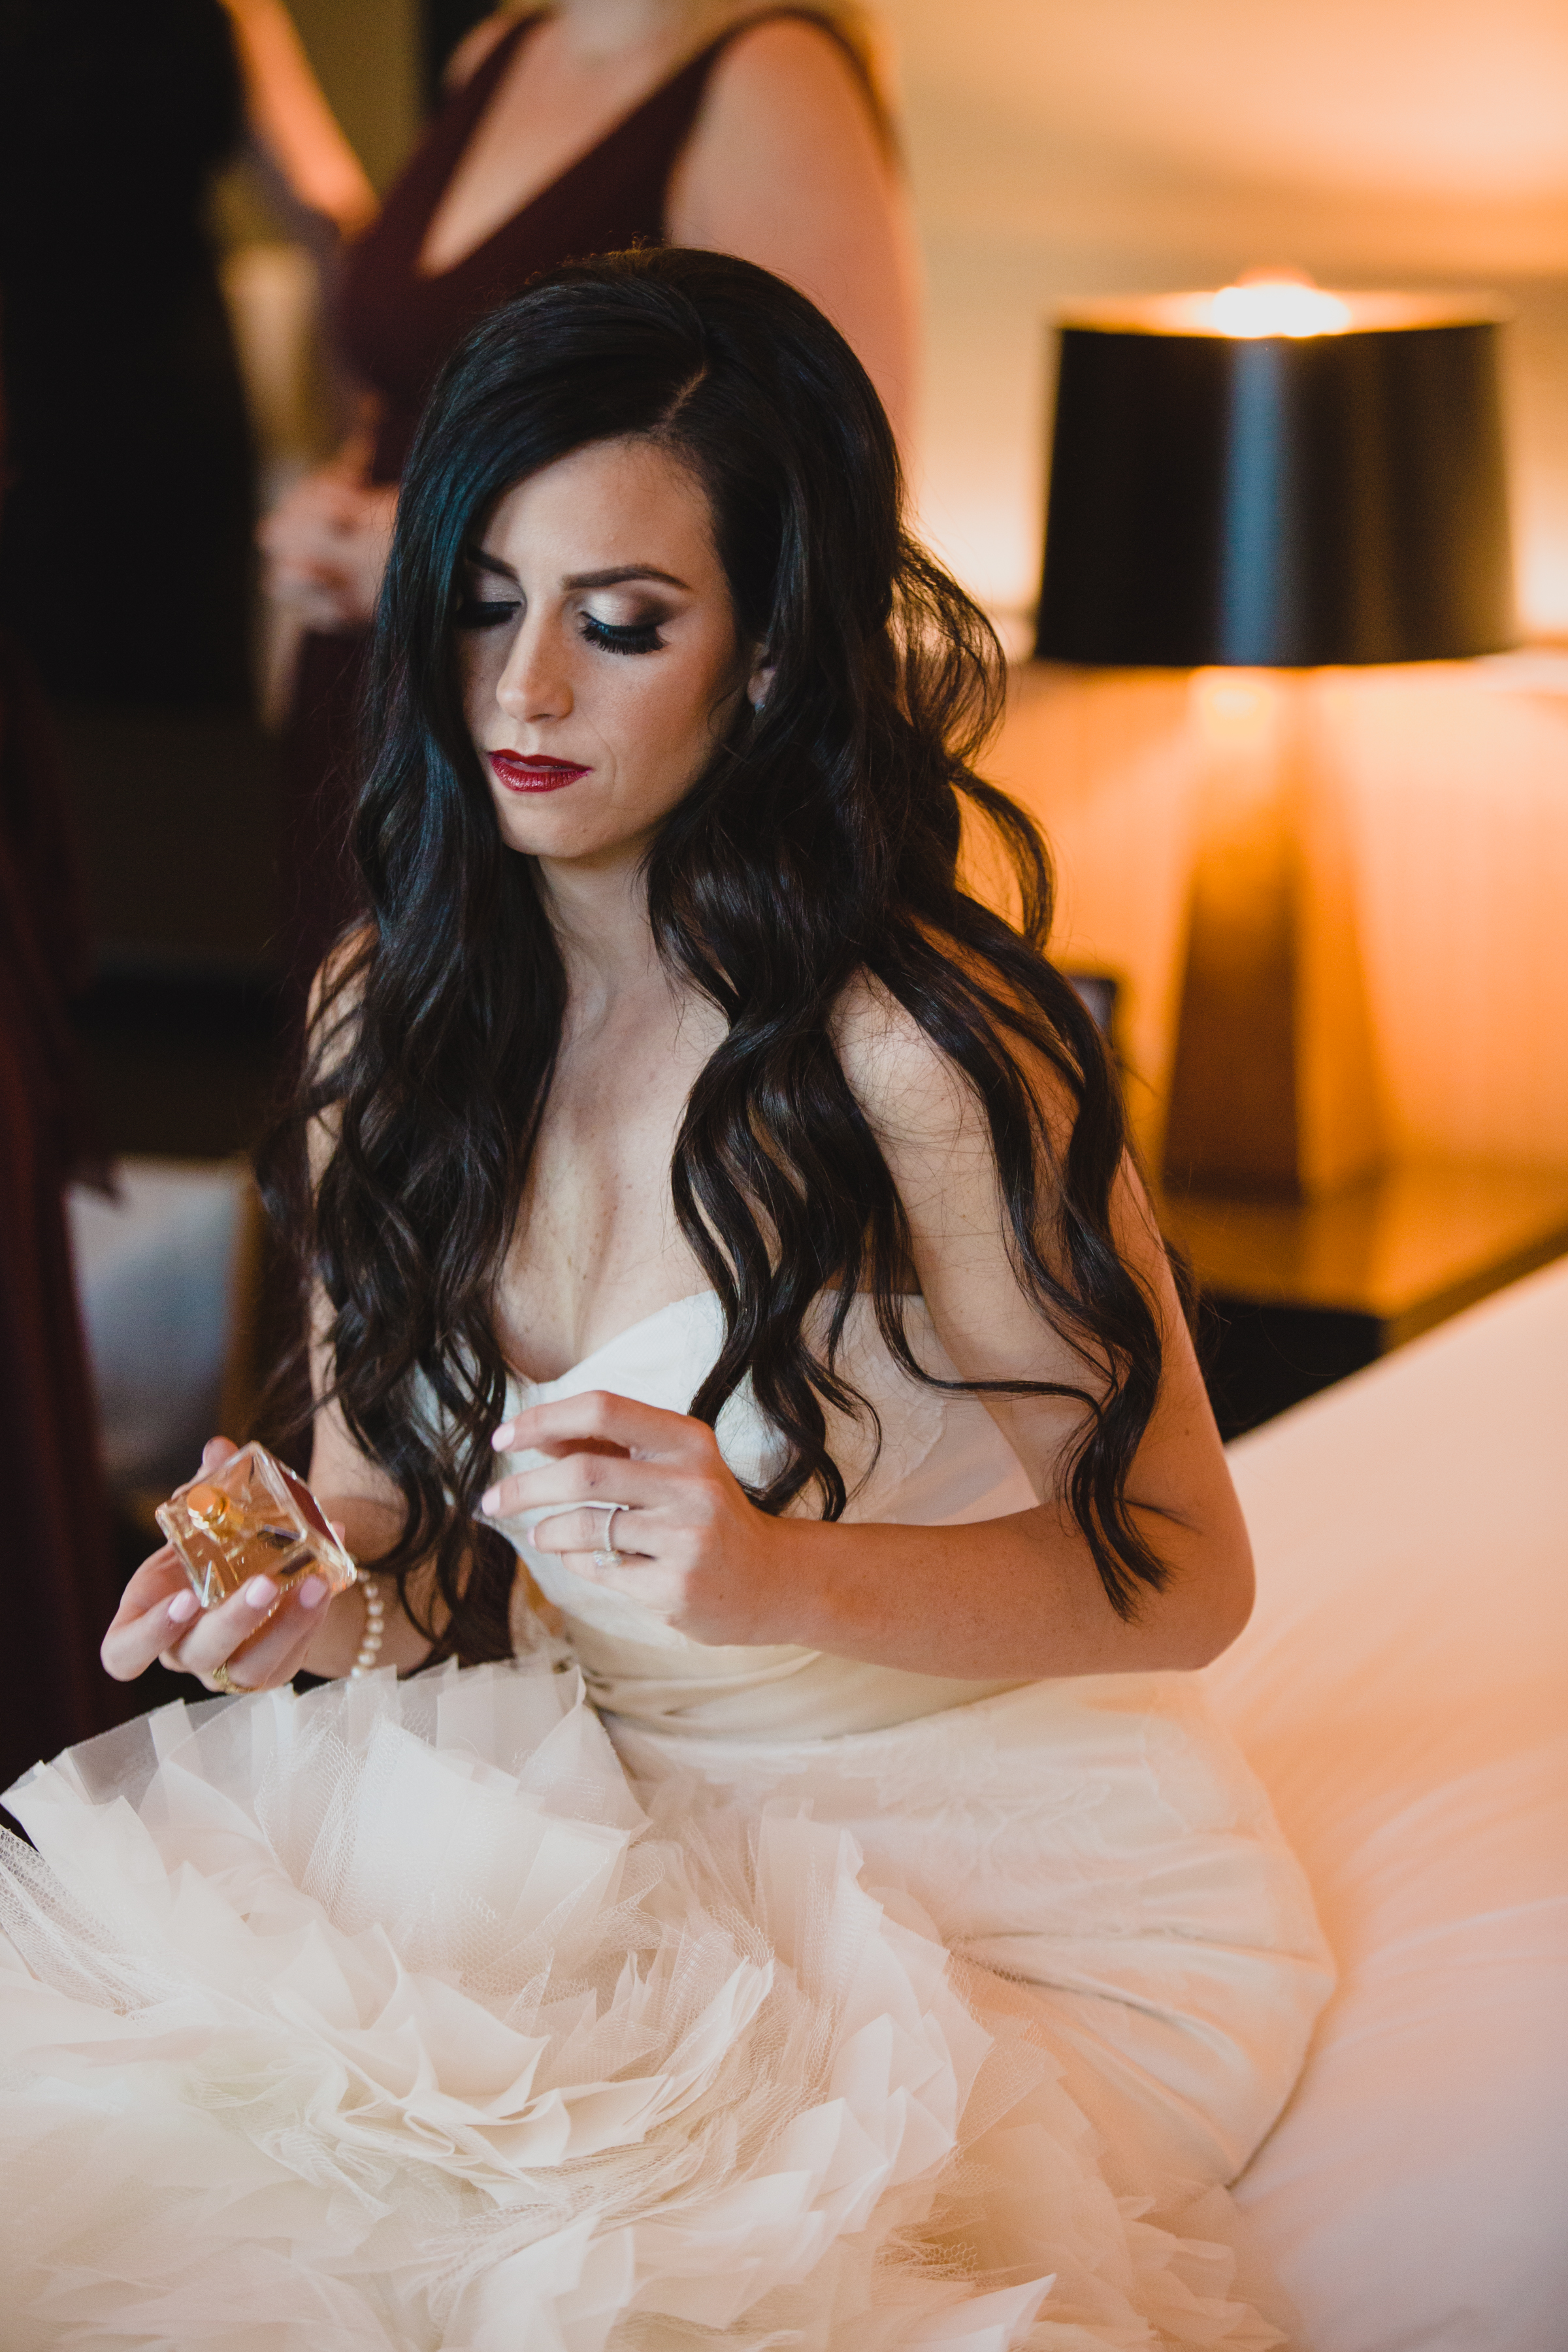 Bride spraying perfume.Luxury wedding at the Mandarin Oriental with a color scheme of white, blush, and pops of wine red produced by Las Vegas Wedding Planner Andrea Eppolito with photos by Stephen Salazar Photography.